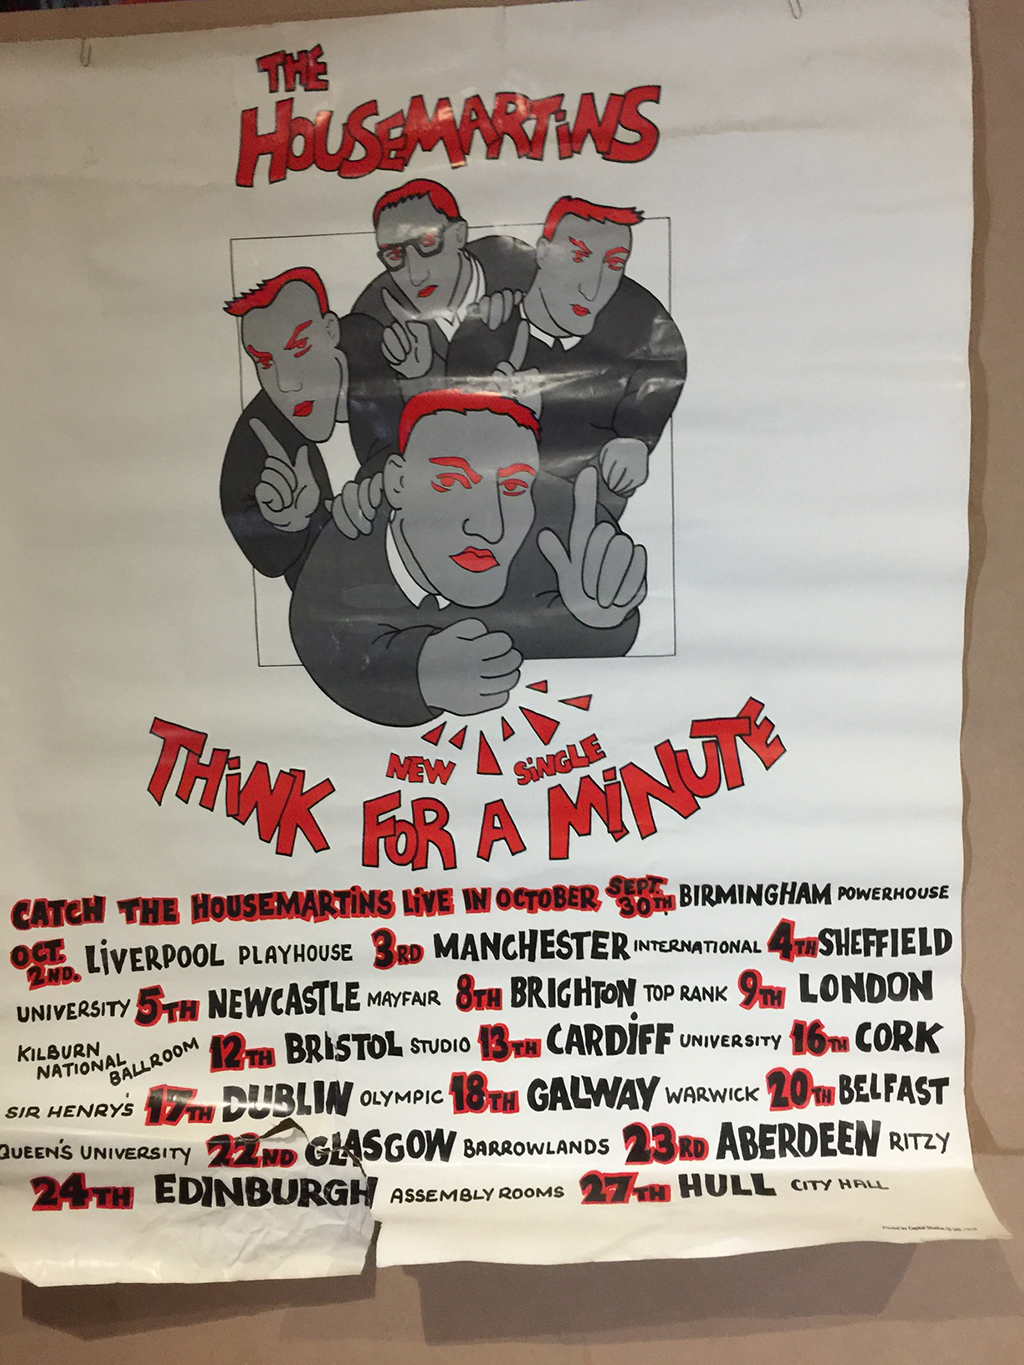 1986 Housemartins tour poster